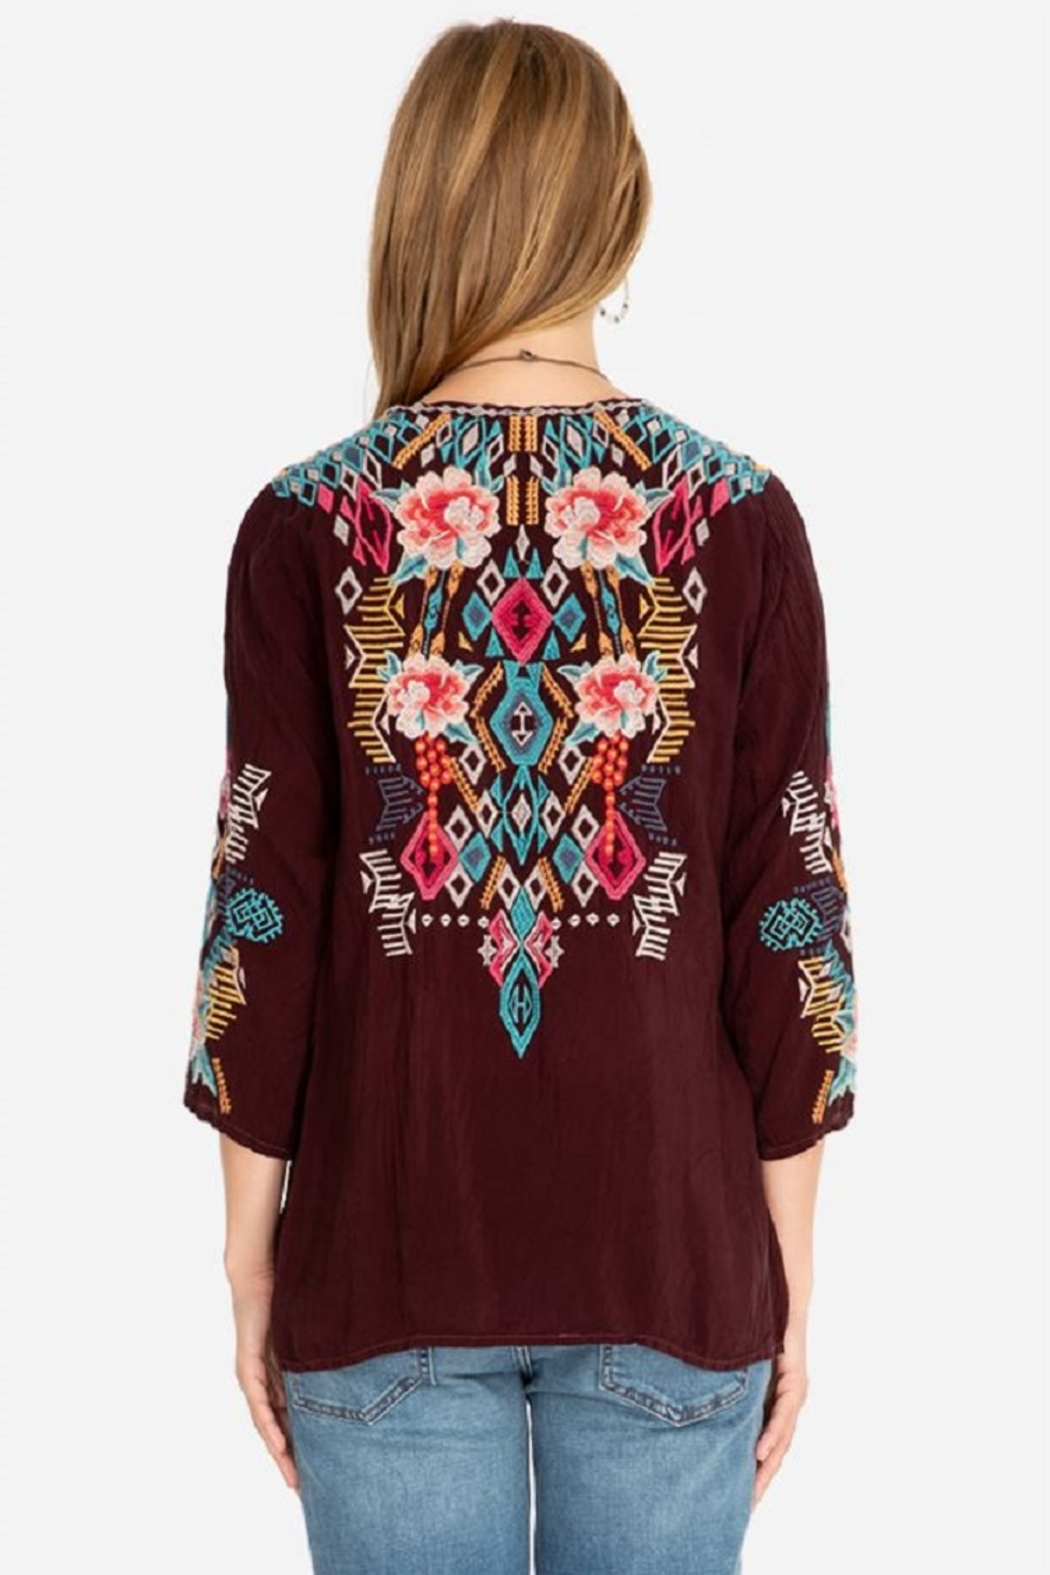 Johnny Was Collection Emmaline Embroidered Blouse - Side Cropped Image